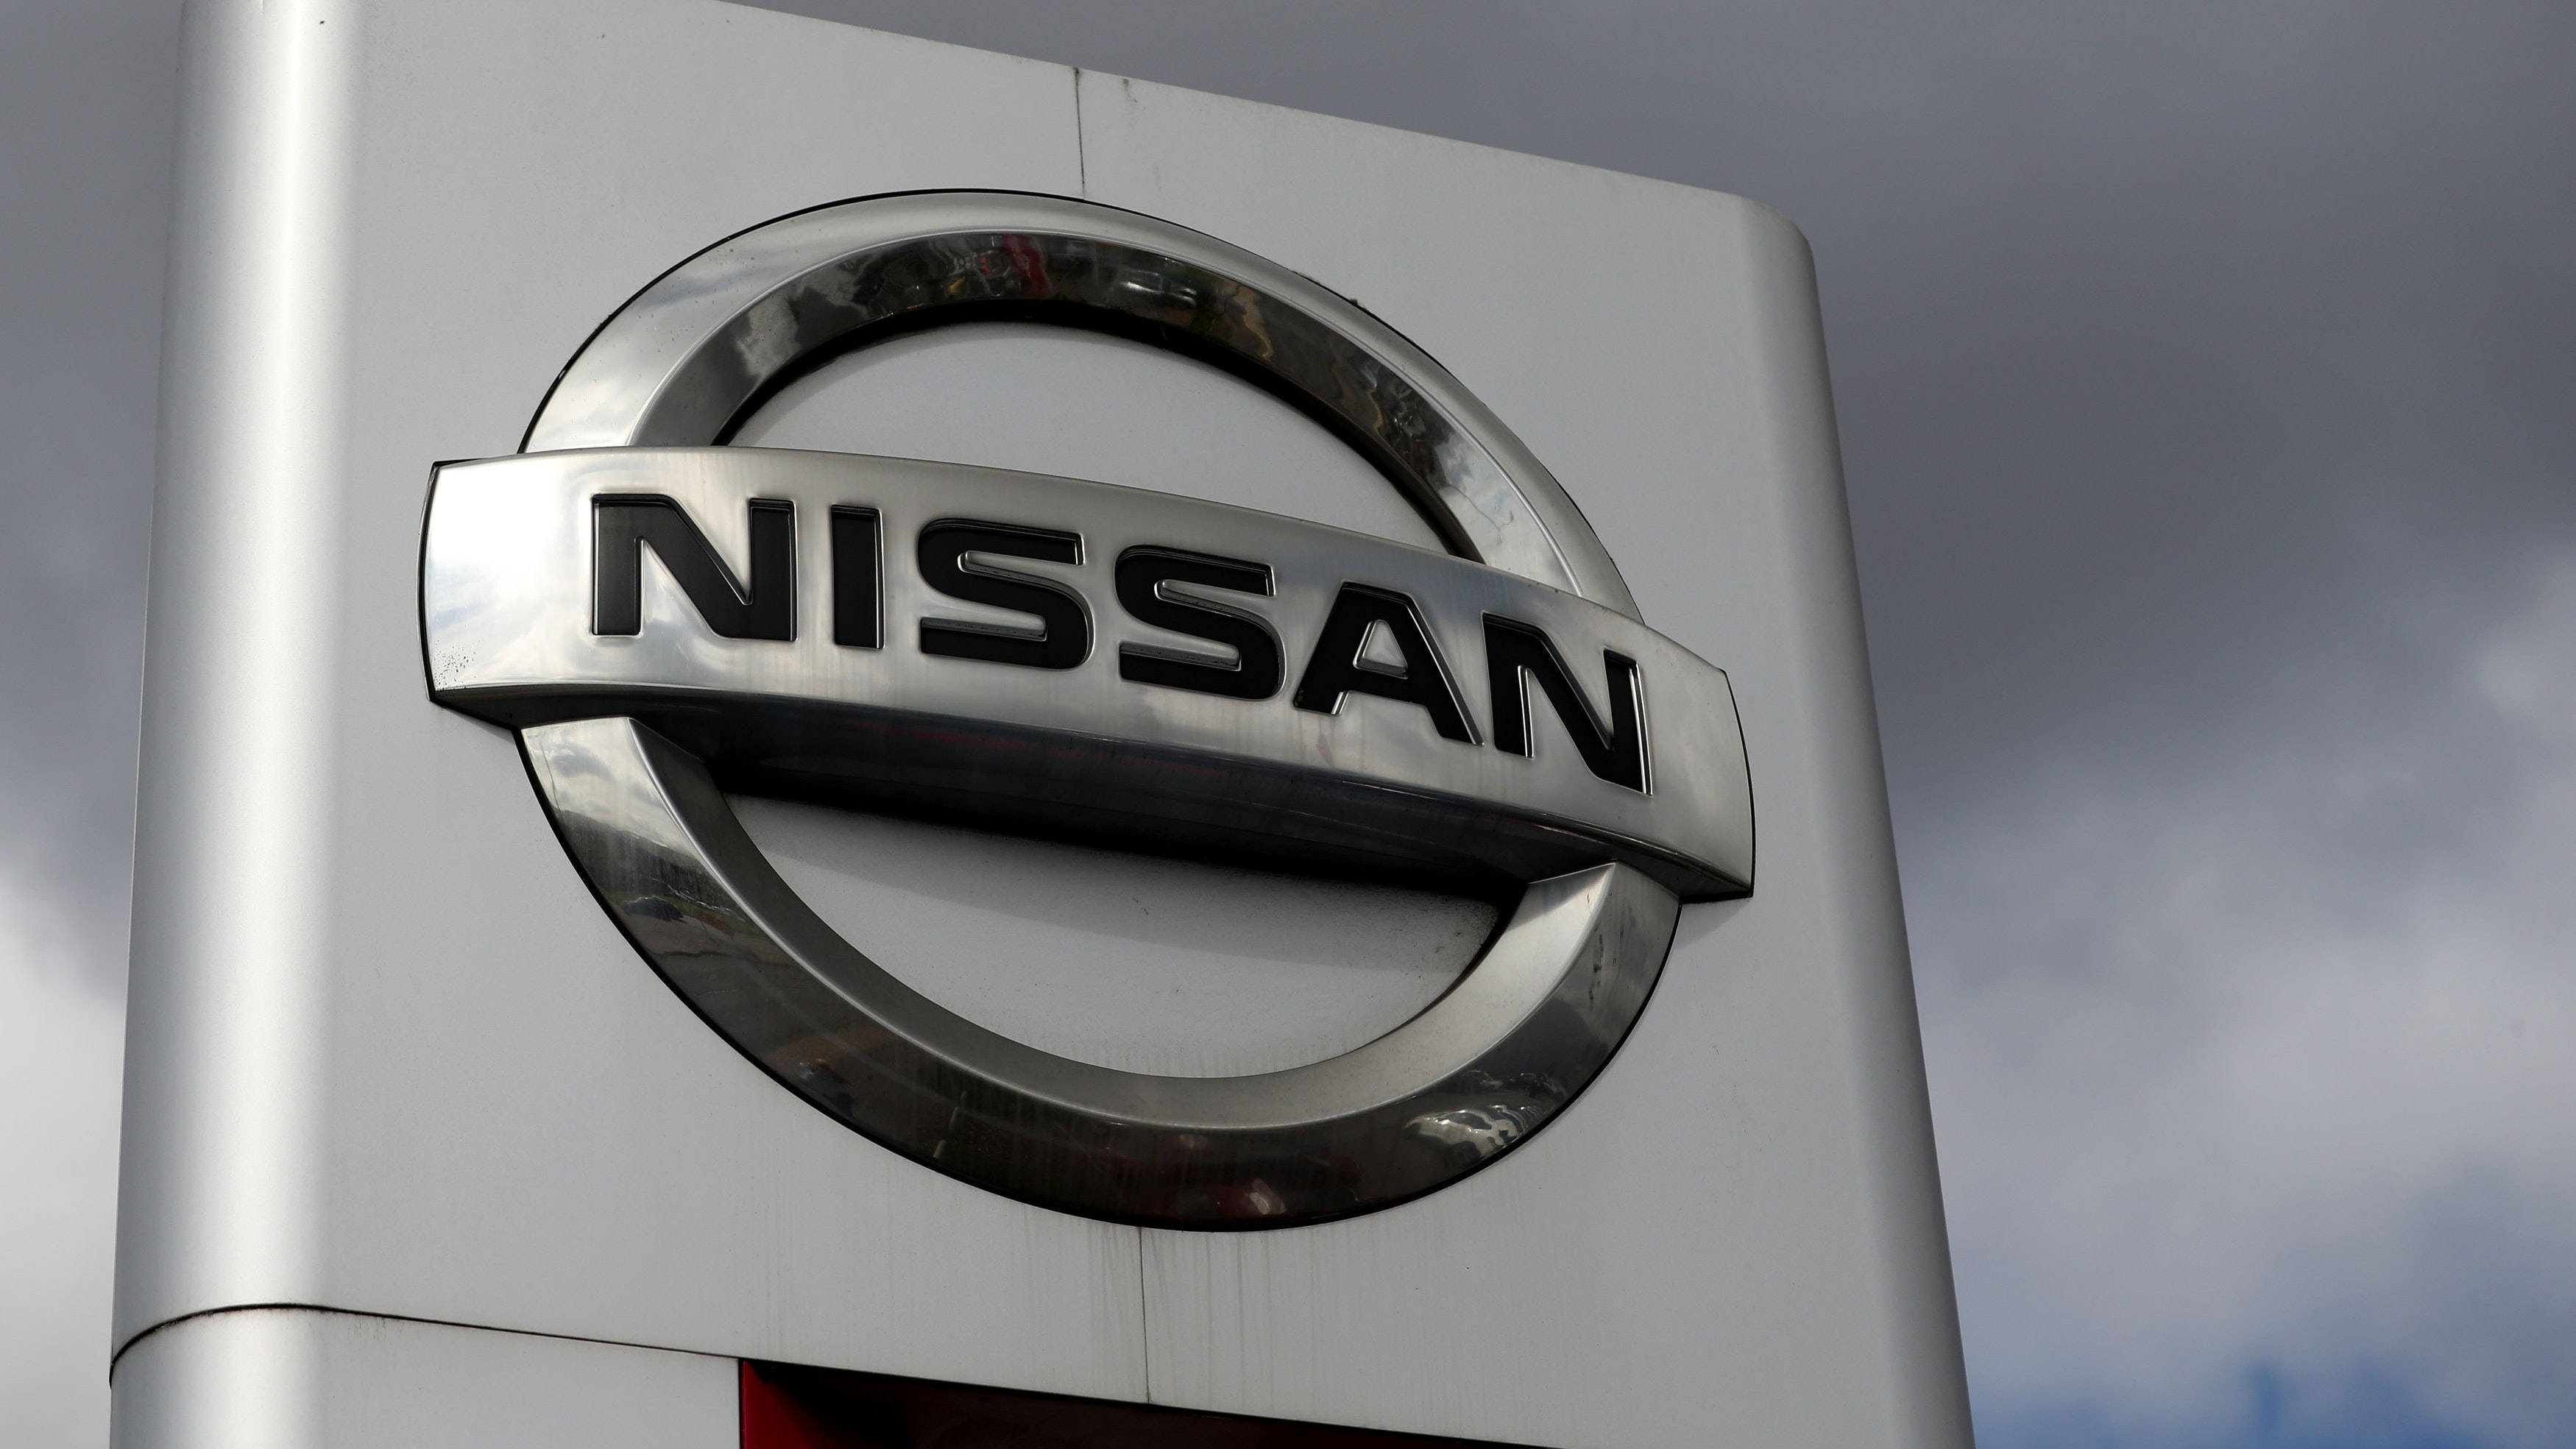 Brexit blamed for Nissan's decision to move SUV production to Japan